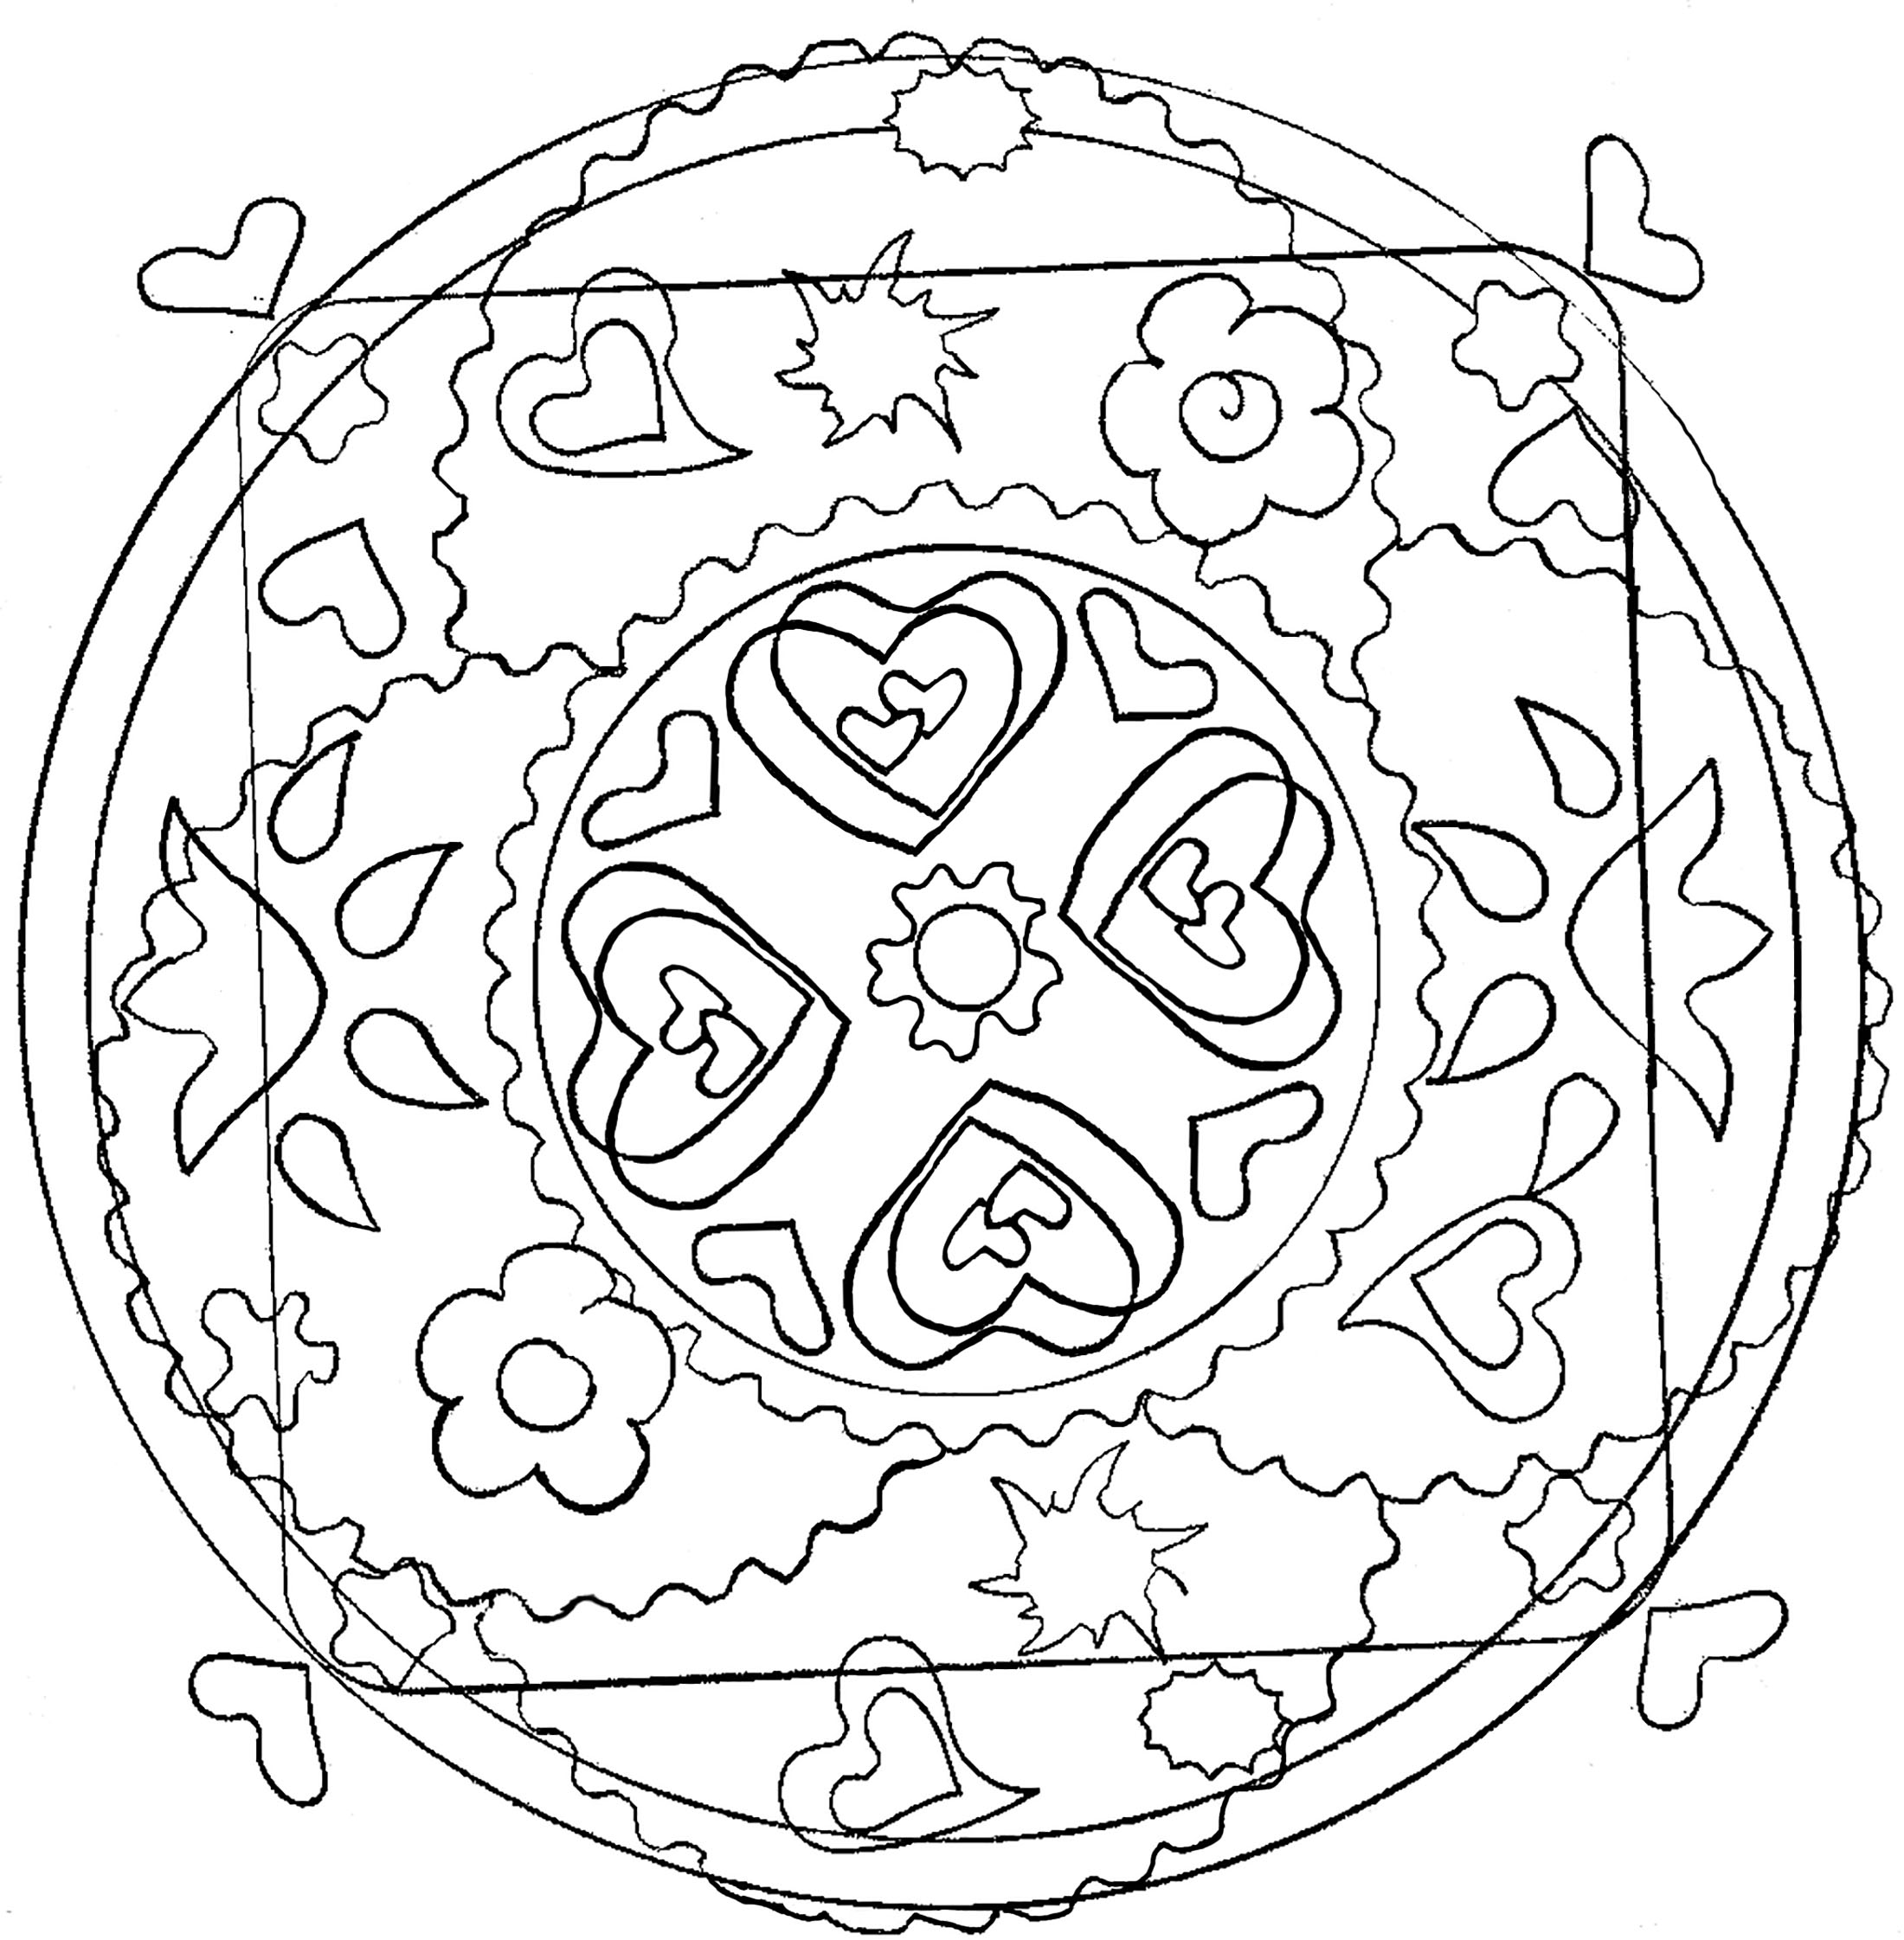 Hearts and flowers mandala - M&alas Adult Coloring Pages